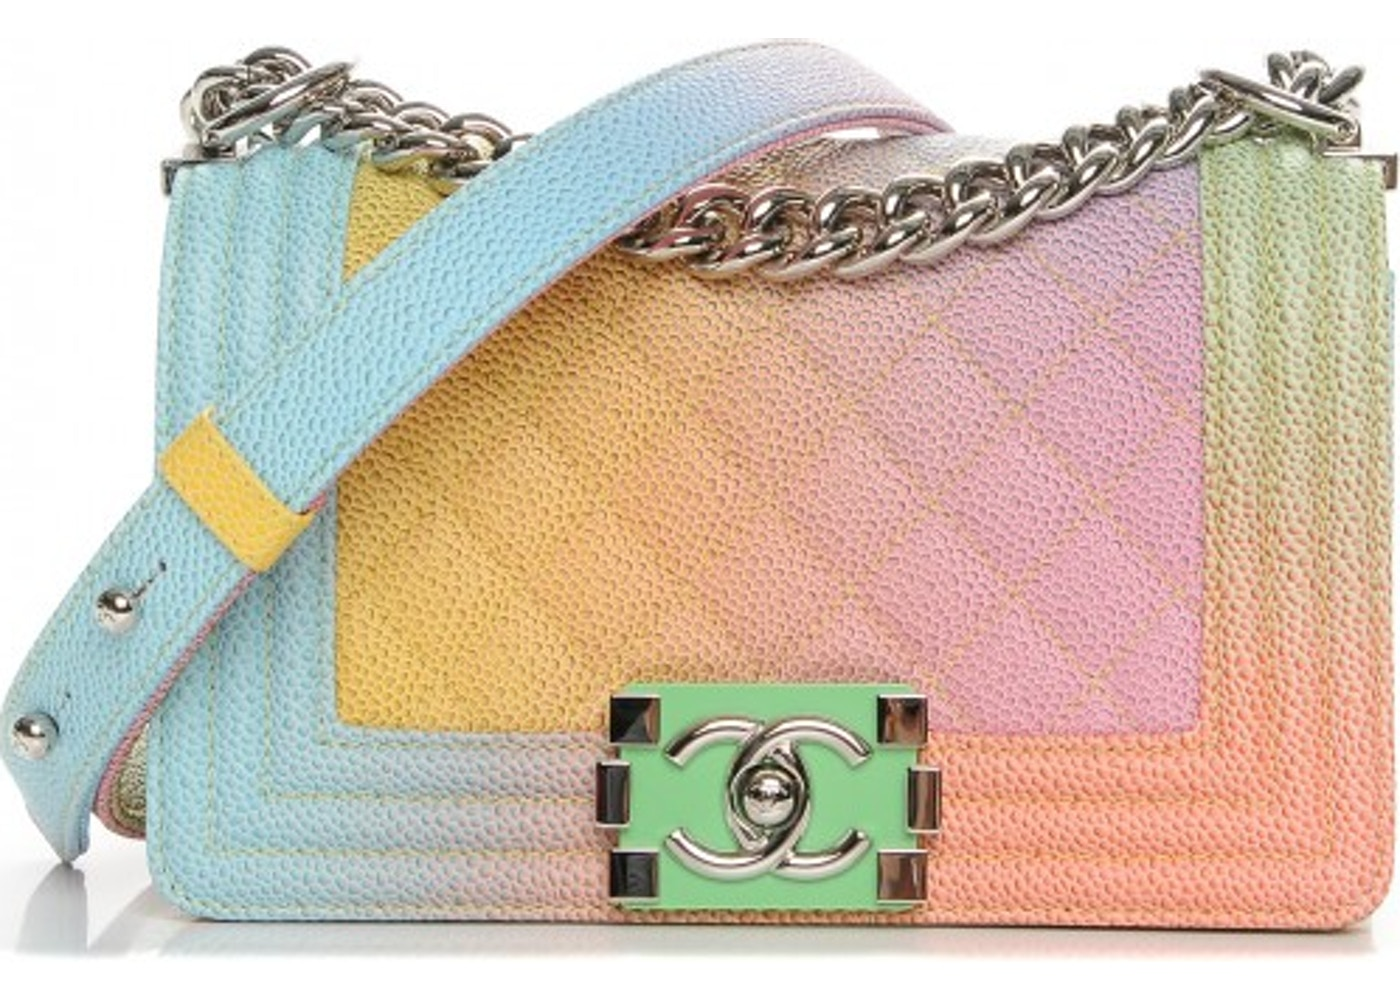 Chanel Cuba Rainbow Flap Boy Quilted Diamond Small Pink Yellow ... 6ab81fd2e5237